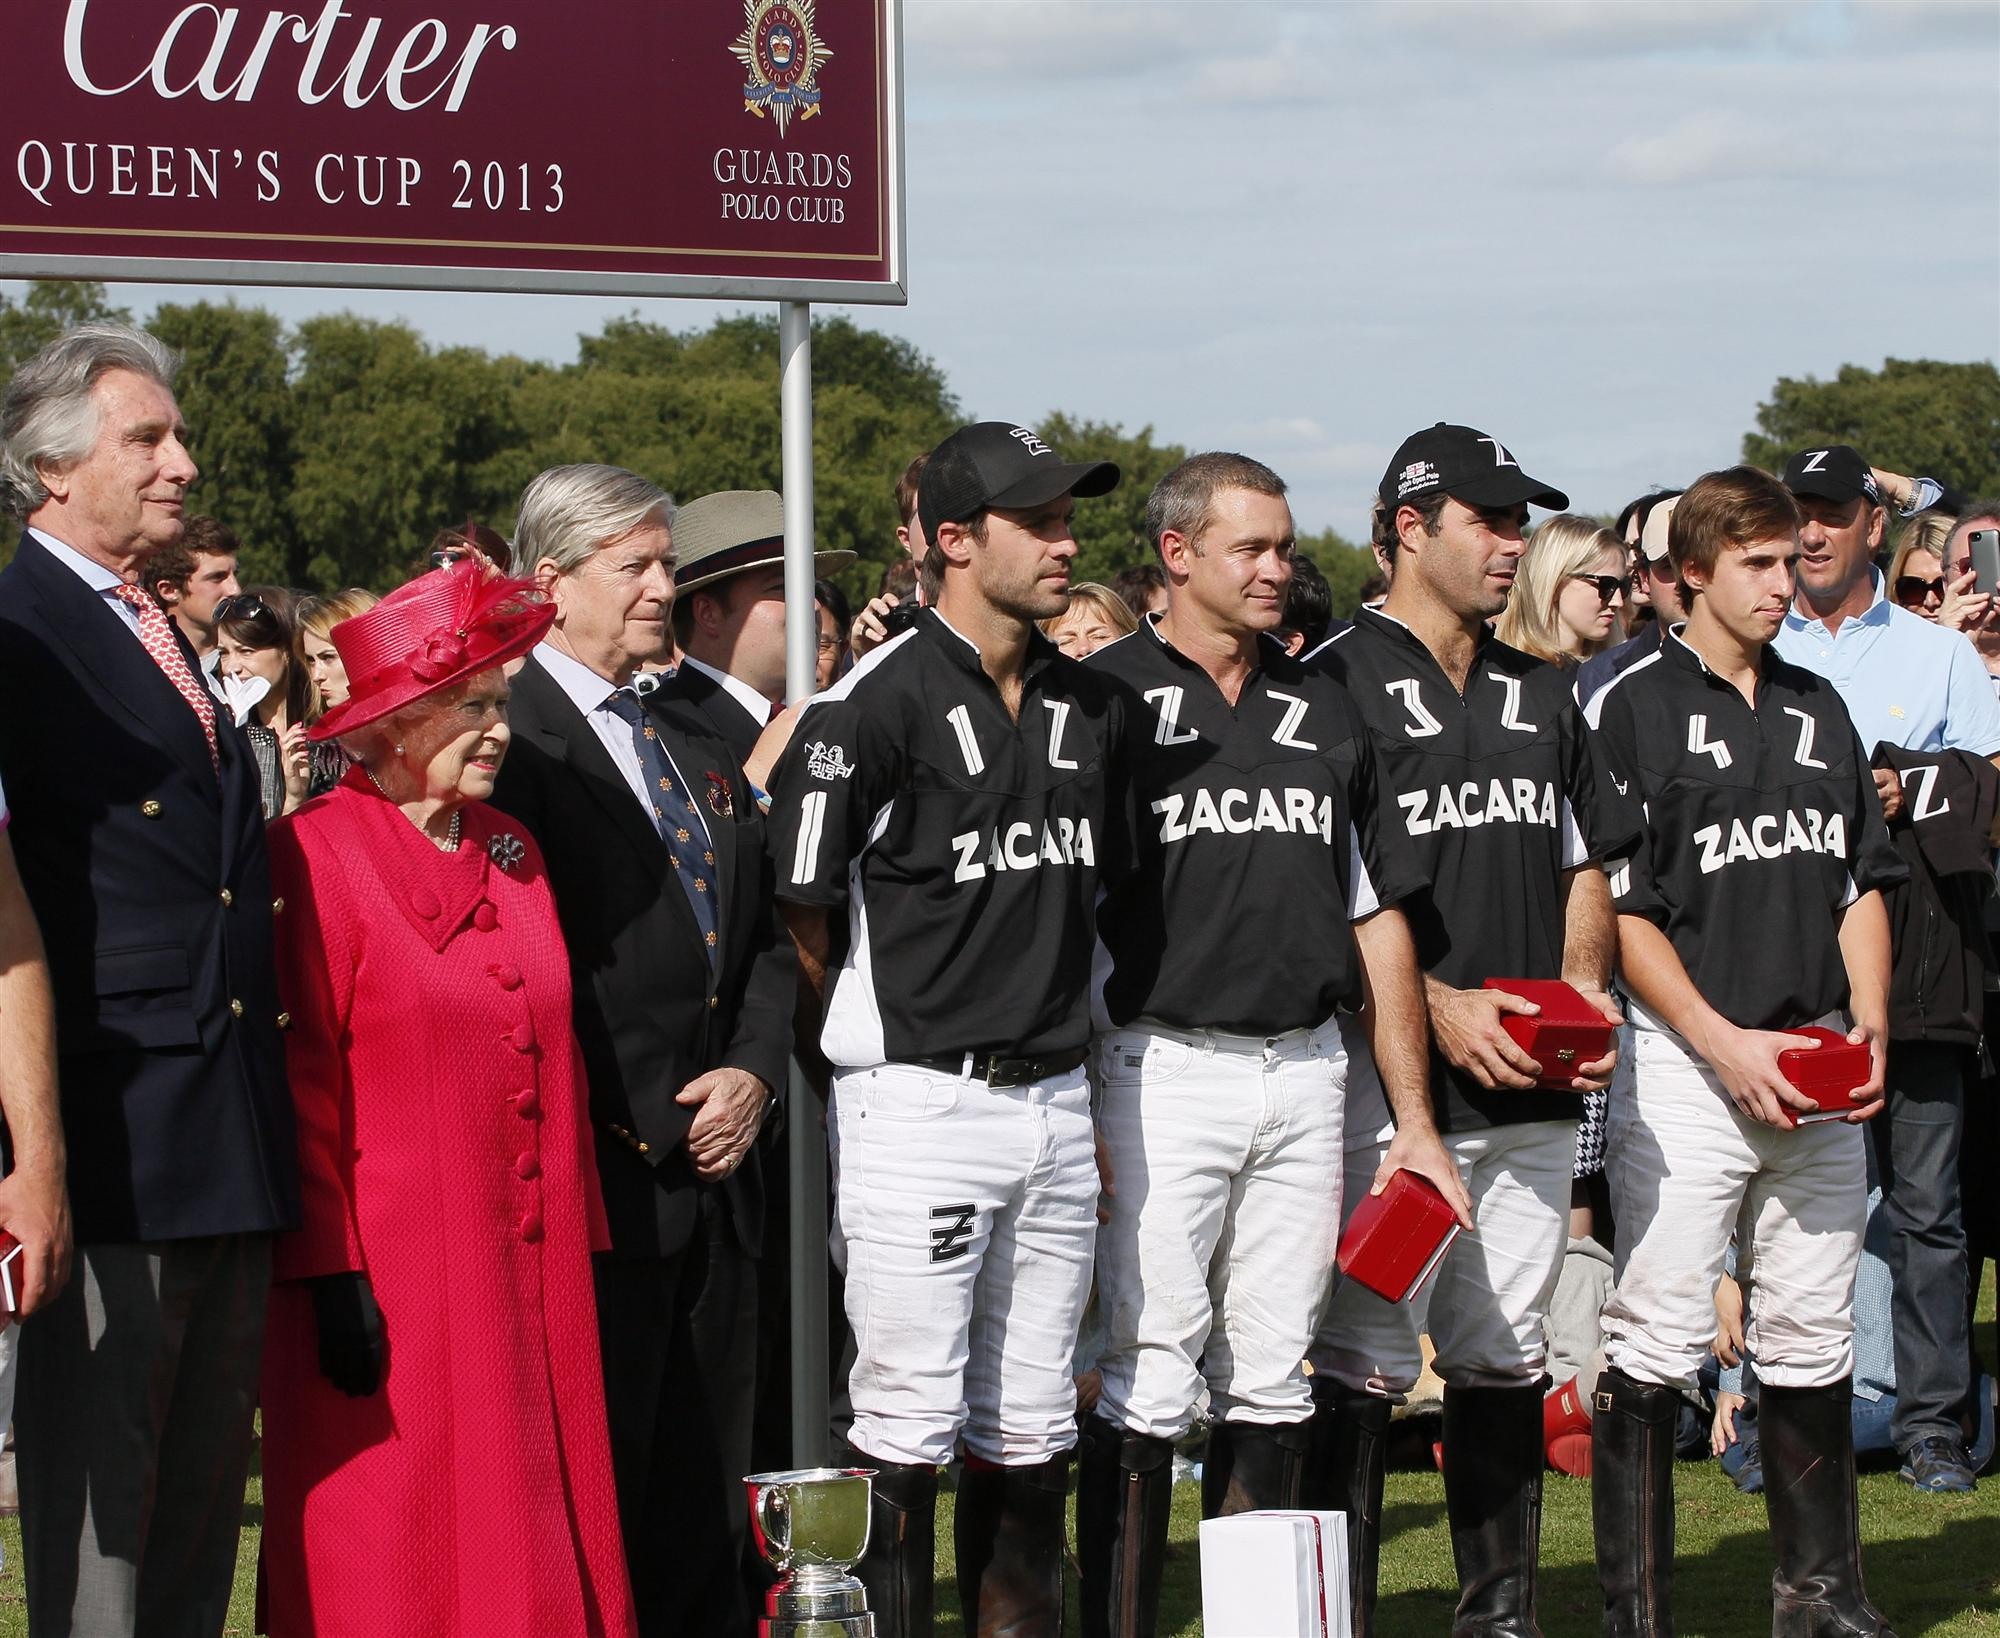 2013 Queen's Cup Final Guards Polo Club